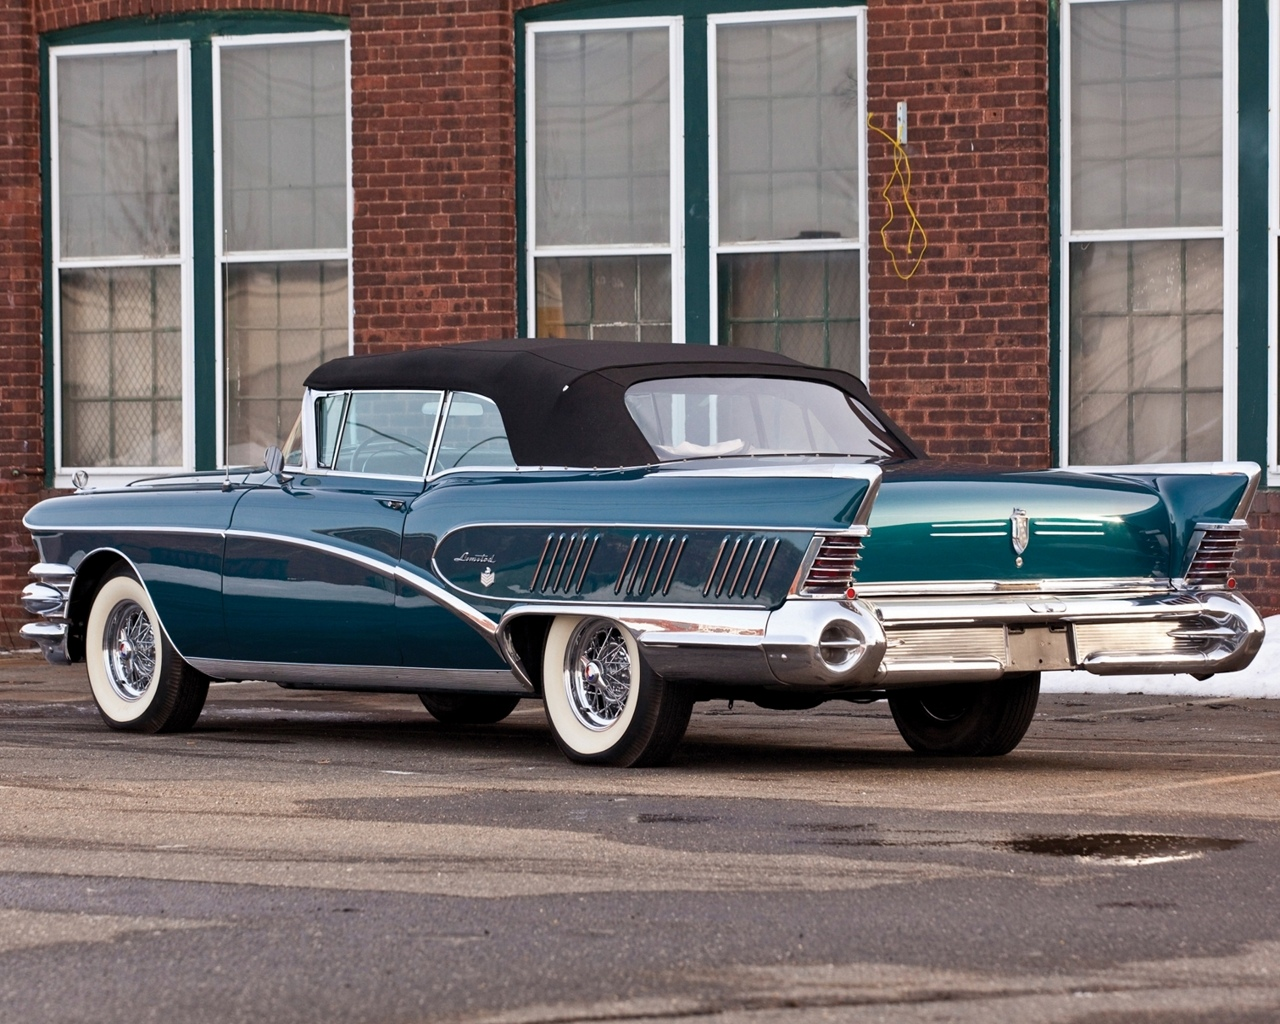 hd wallpapers 2012 american classic cars wallpapers